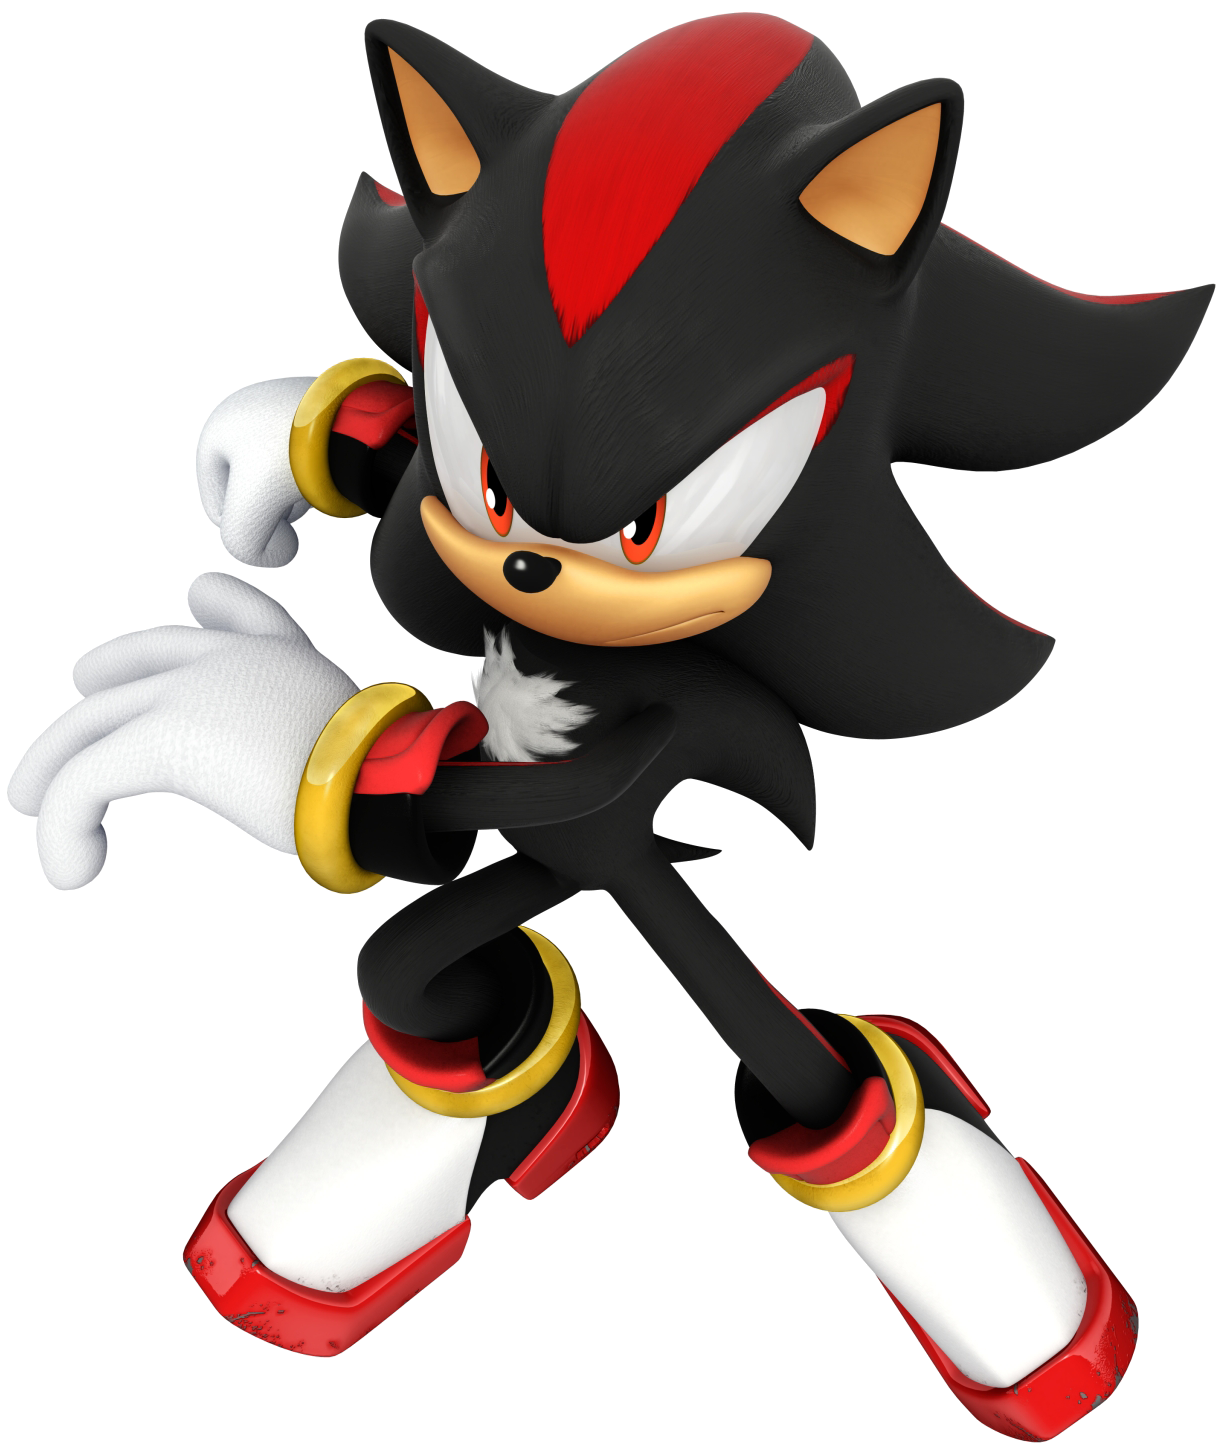 Shadow The Hedgehog Battle Fighters The Ultimate Fighters Wiki Fandom